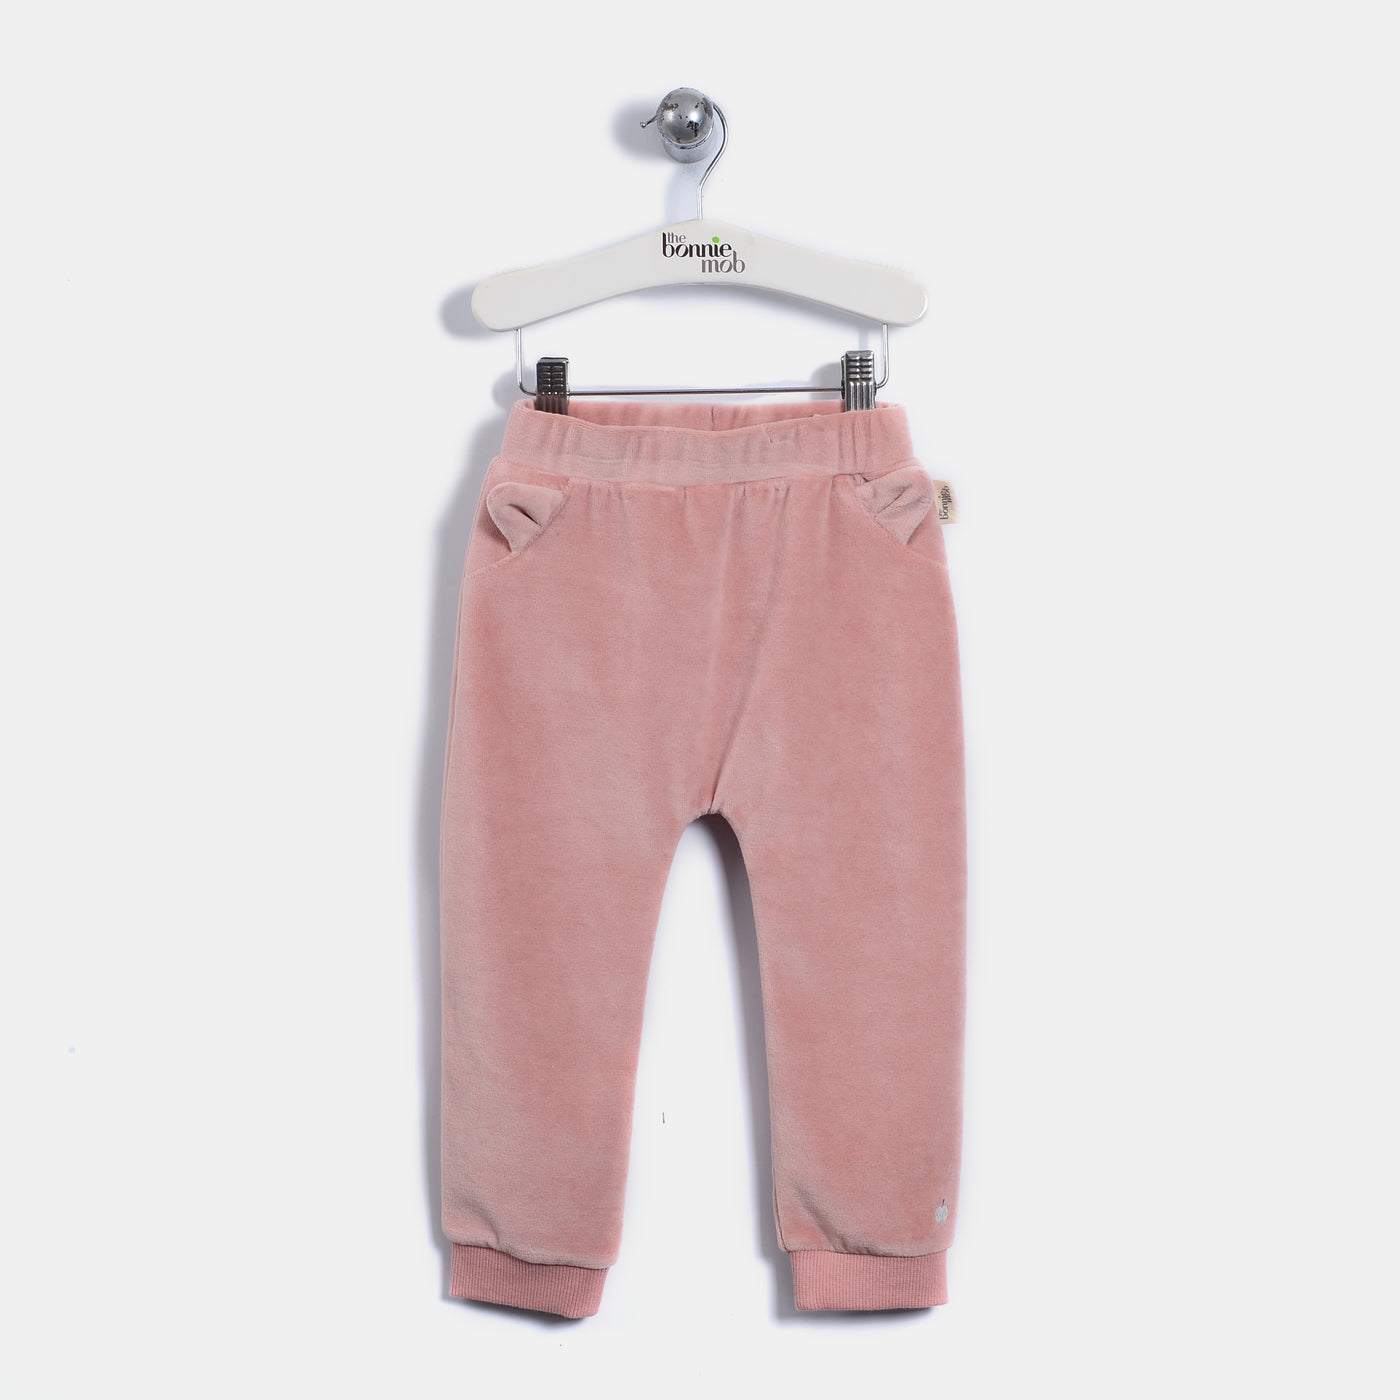 L-LEON - Leopard Ear Trousers - Baby Girl - Dusty pink